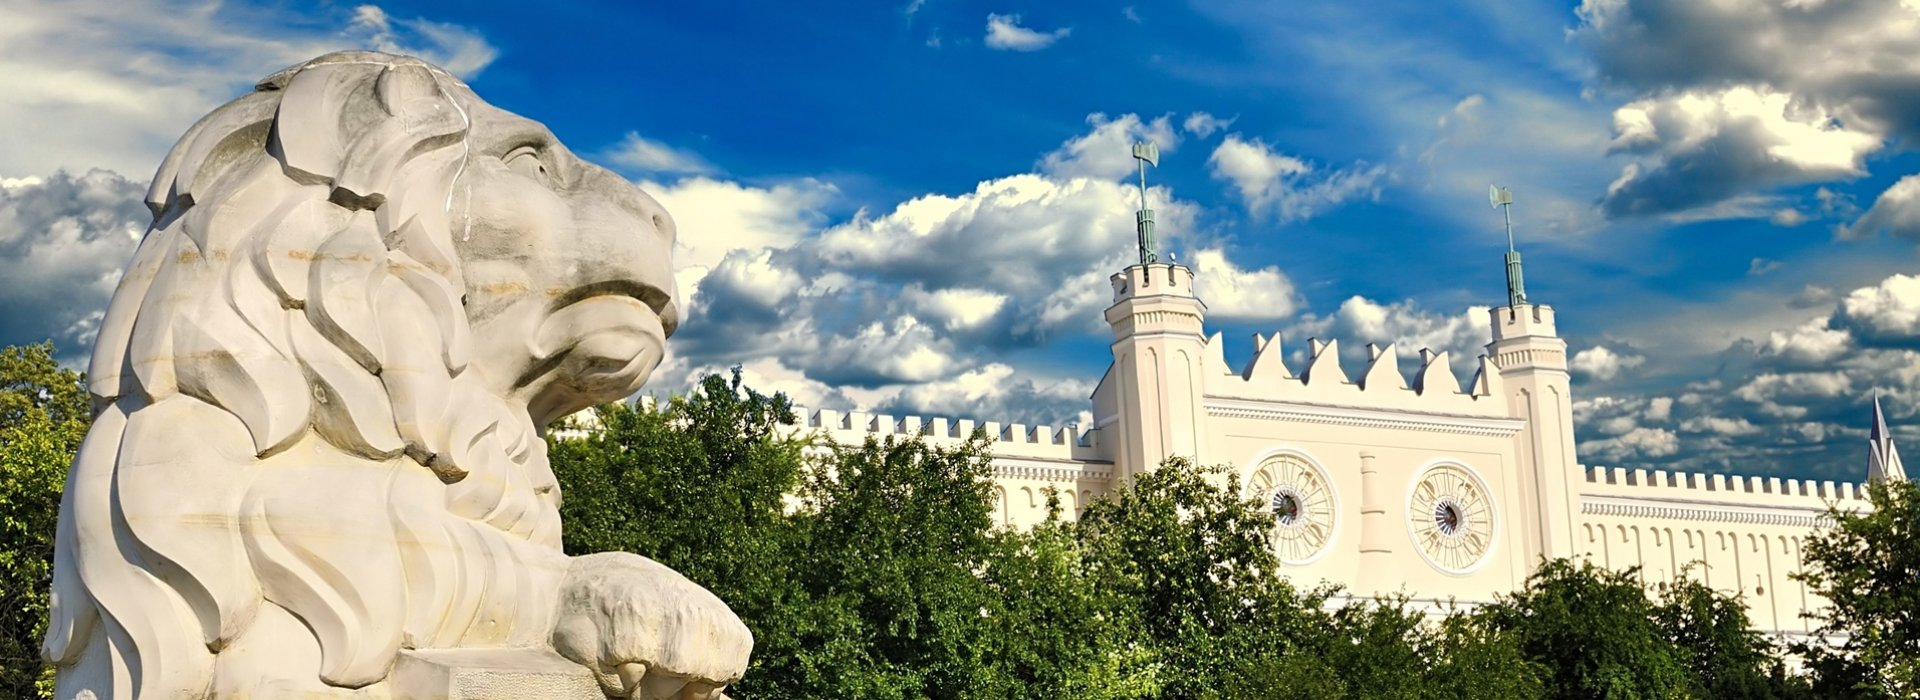 Lublin's historic palace and symbol of the city.